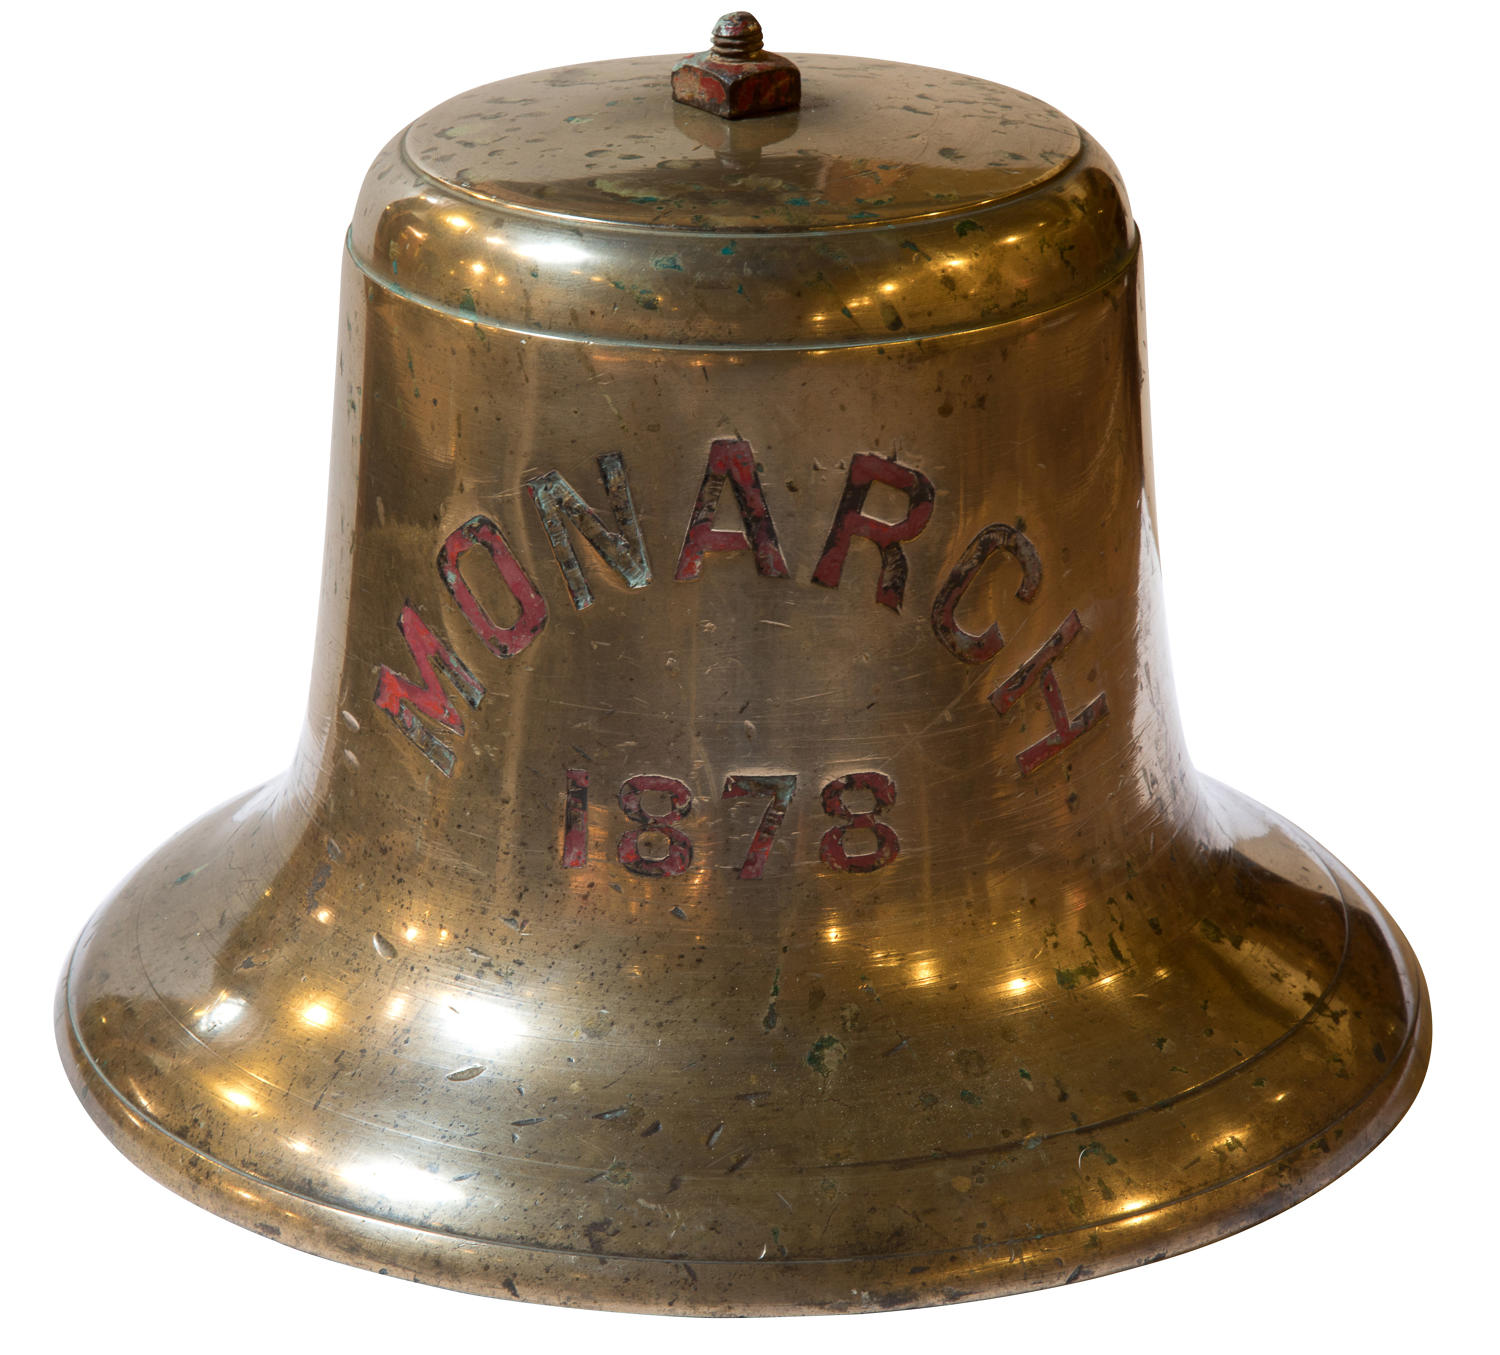 A bronze ships bell from HMS Monarch dated 1878